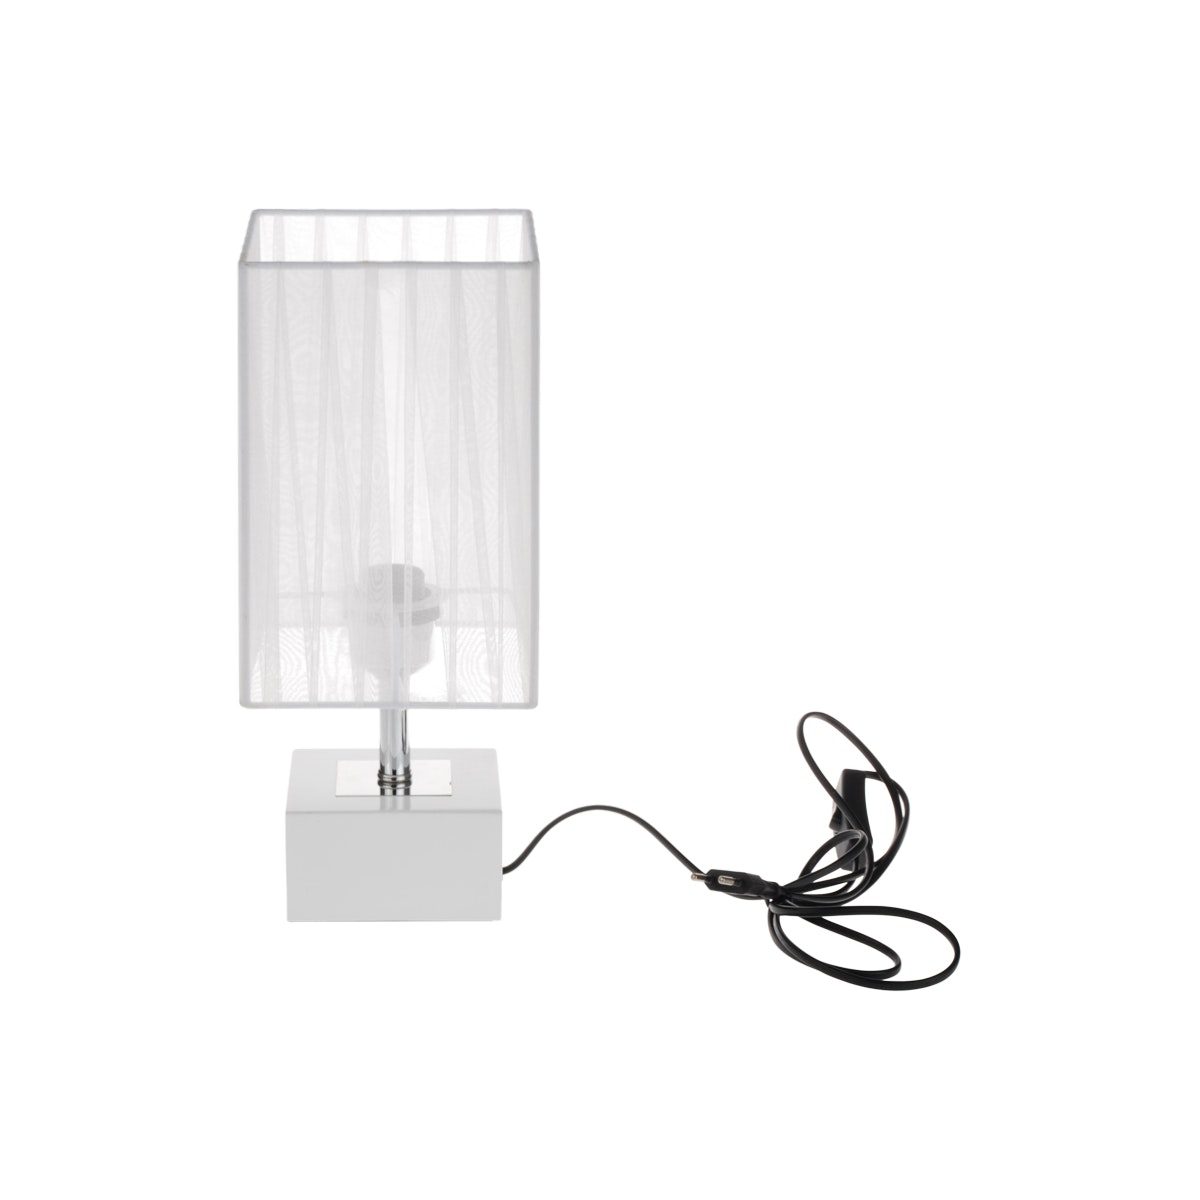 JYSK Table Lamp,220V,White 17309-A